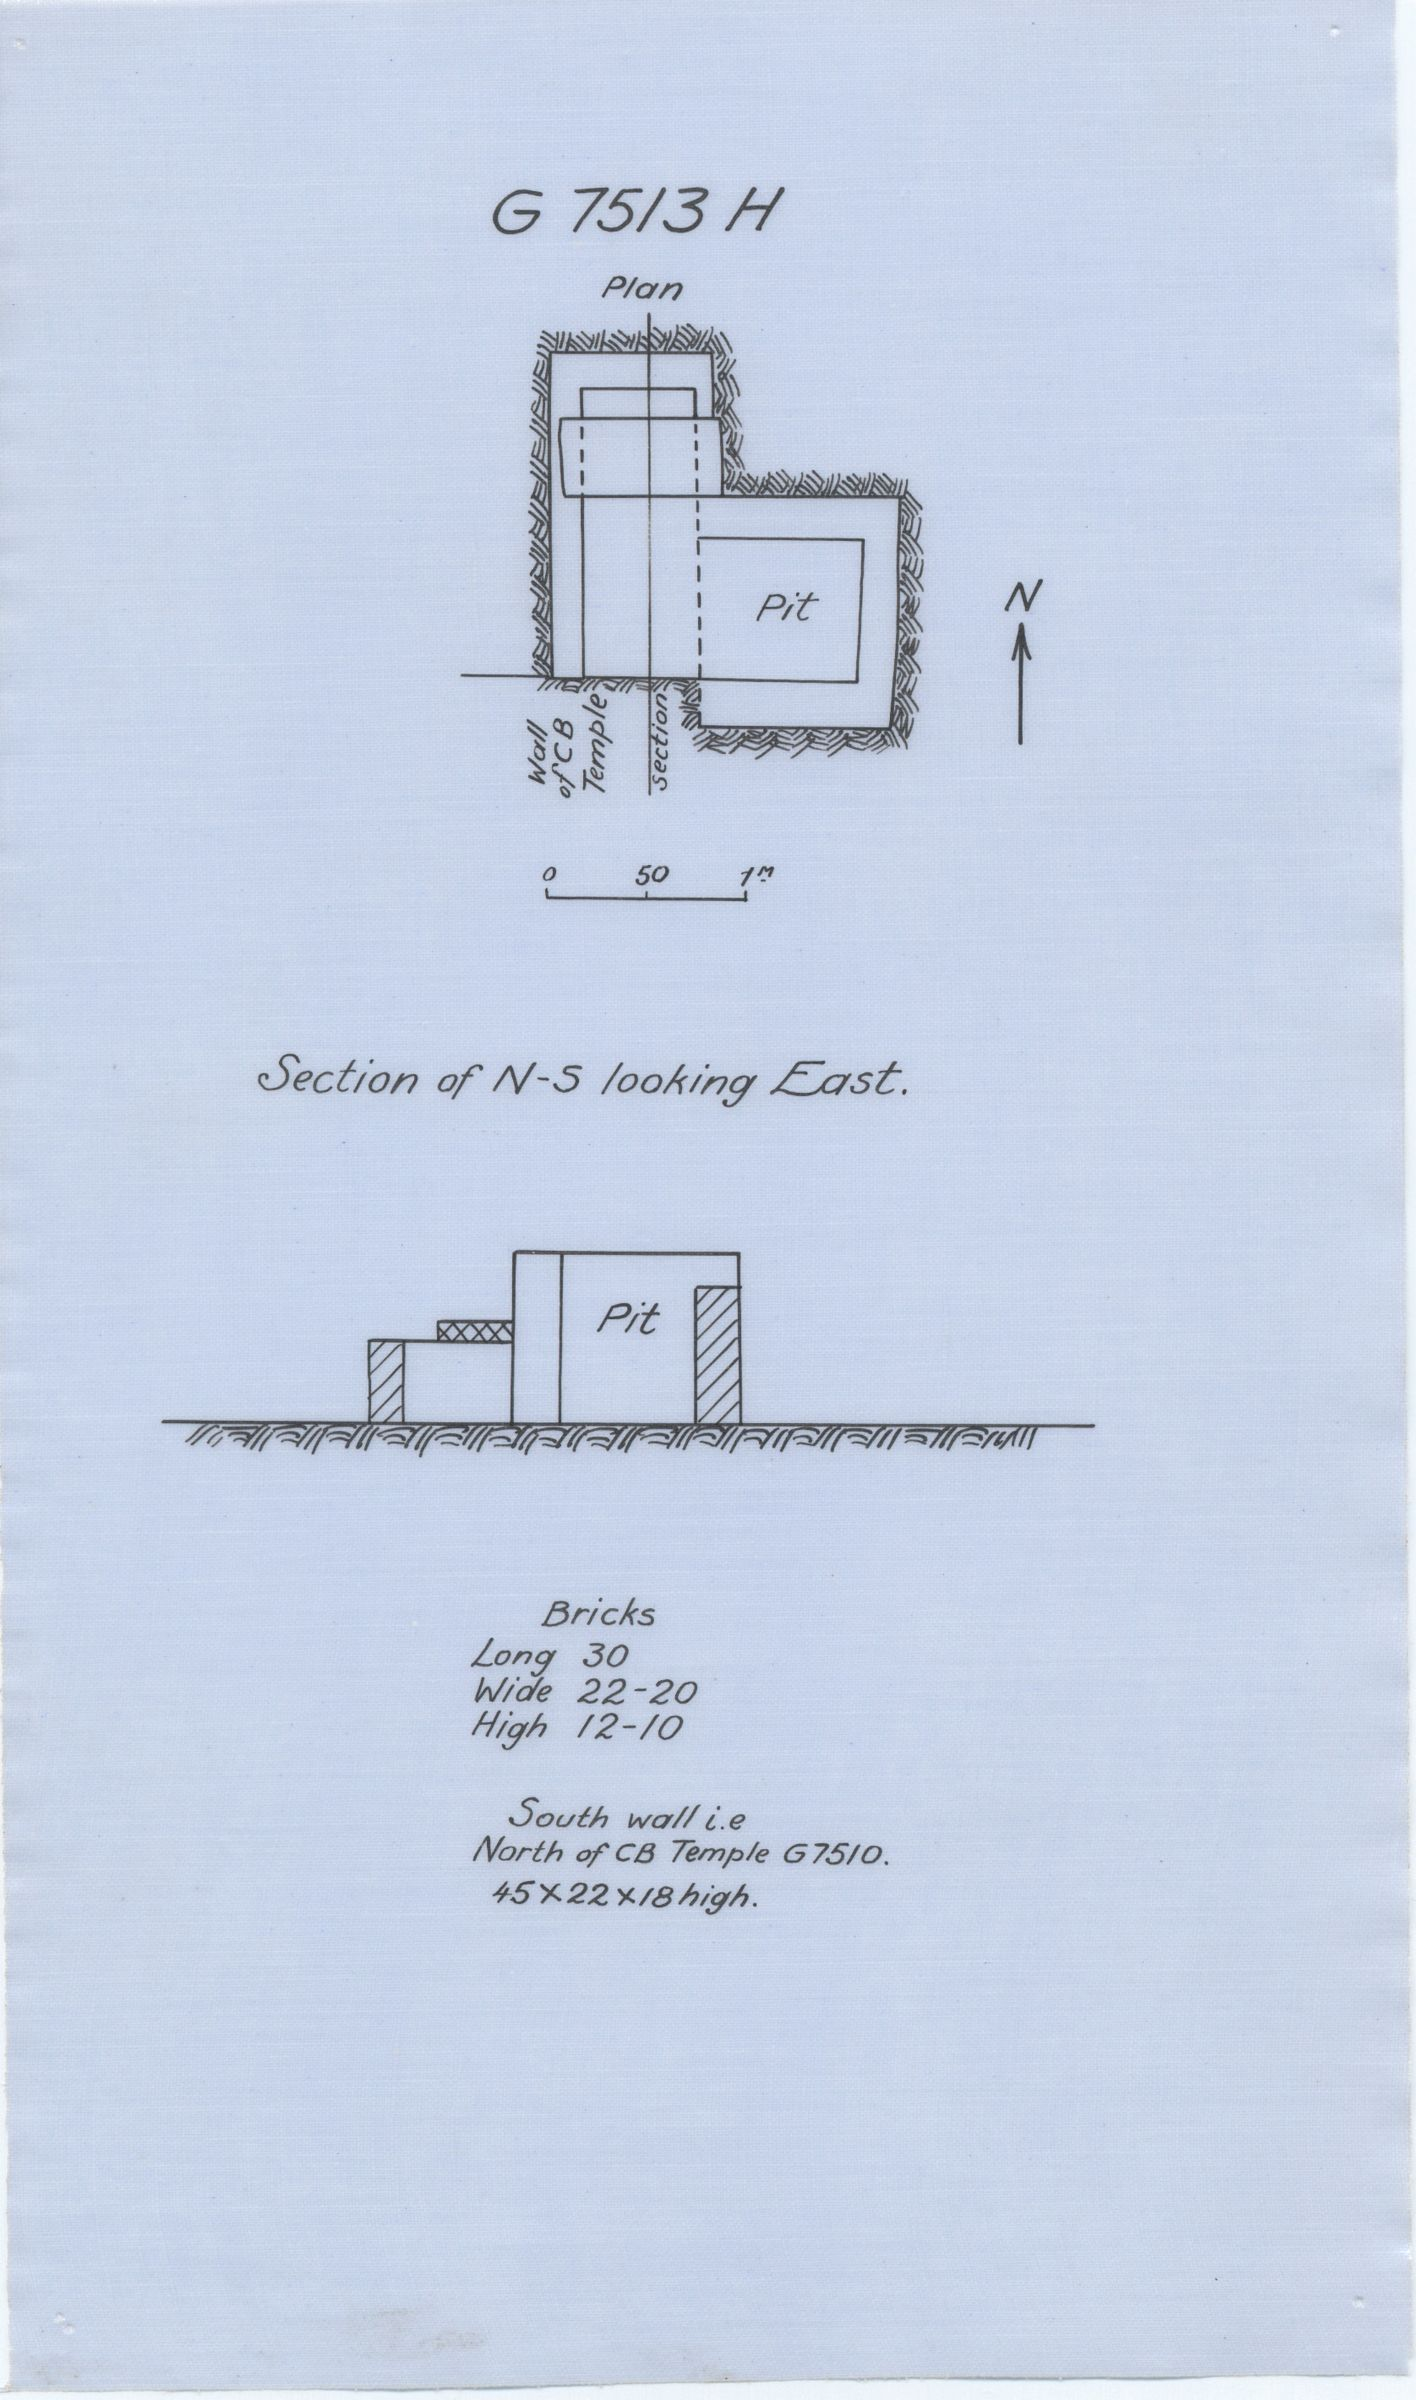 Maps and plans: G 7513, Shaft H